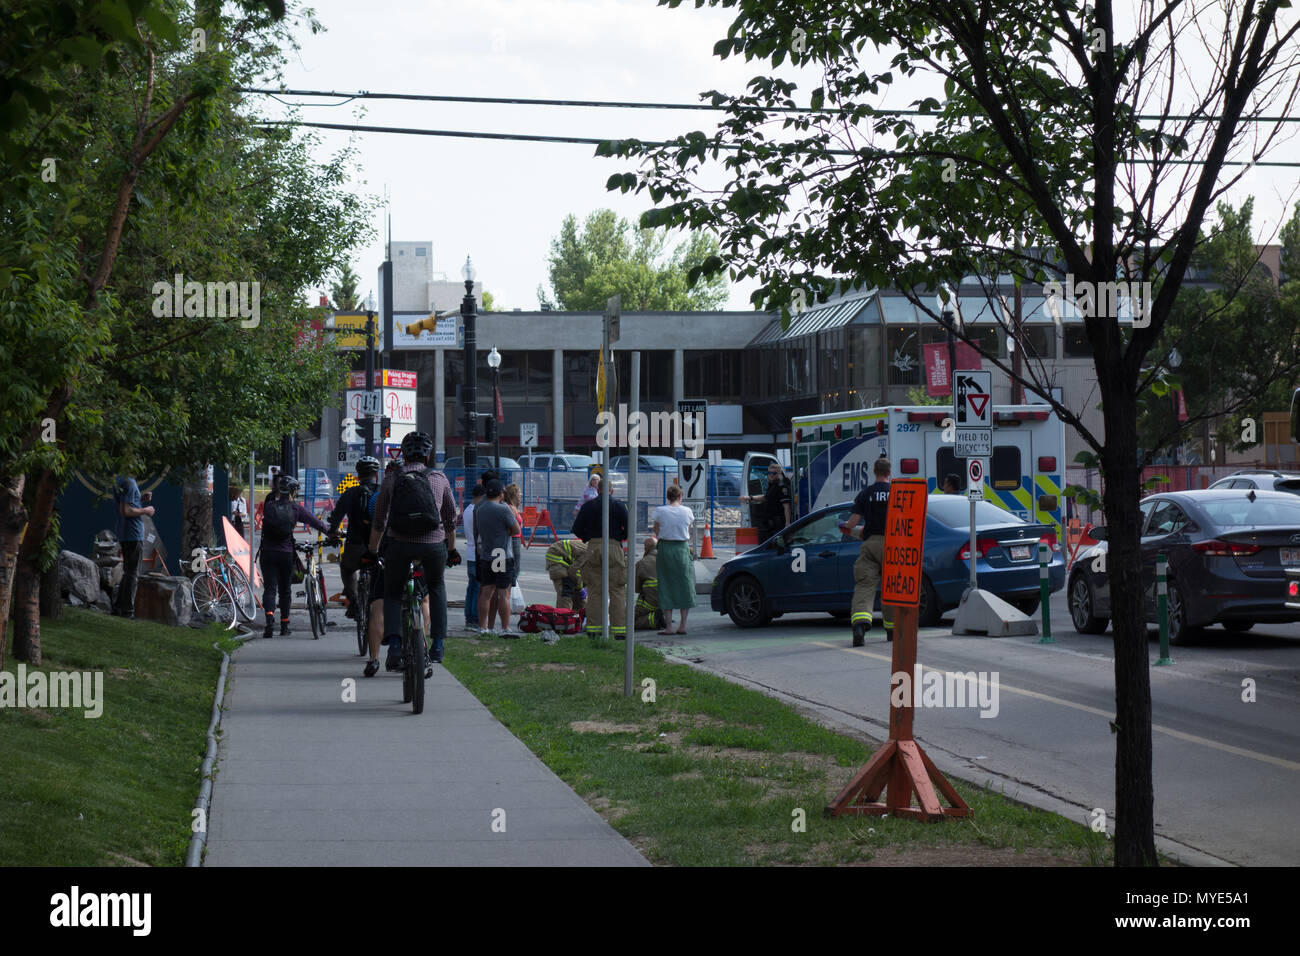 June 6th, 2018; Calgary, Alberta. Paramedics arrive on scene where a cyclists was hit in the bike lane by a vehicle turning left into the alley between 16th and 17th Avenue SW and 5th Street SW. Credit: M.J. Daviduik/Alamy Live News - Stock Image